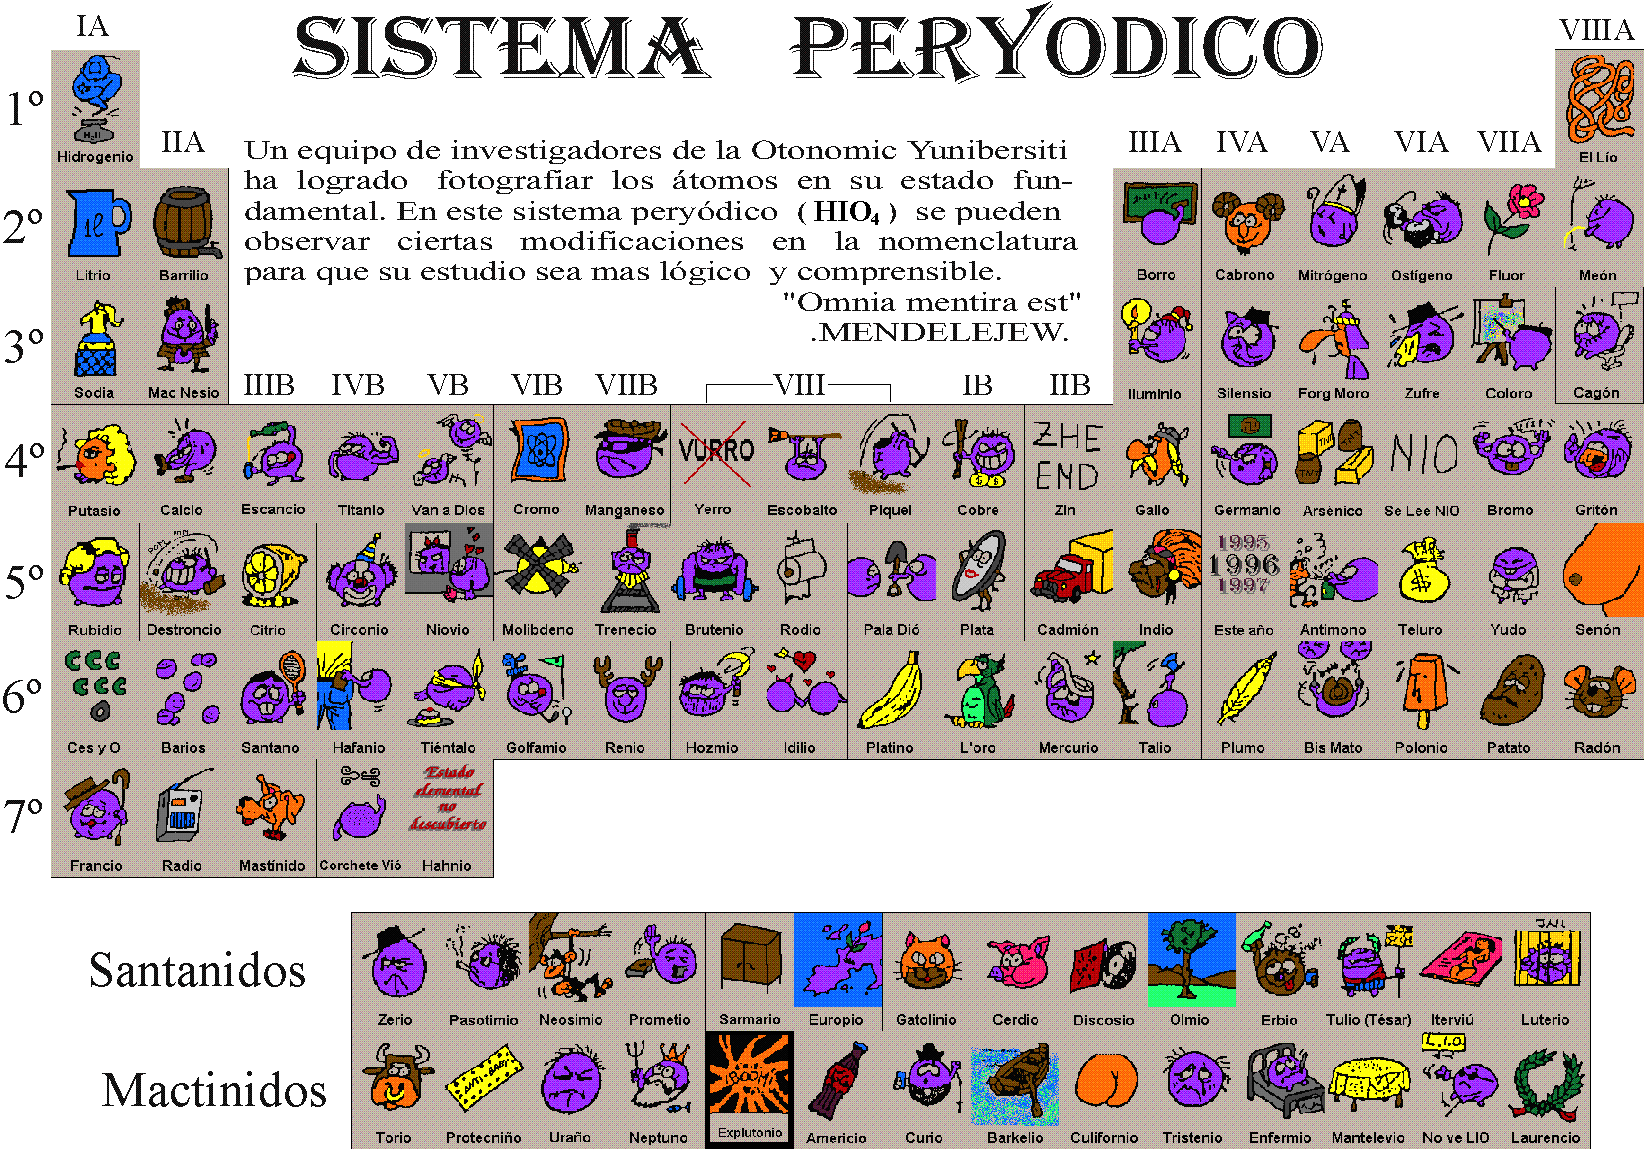 Periodic table in pictures gallery periodic table images periodic table database chemogenesis a famous spanish periodic table with punsjokes on the element names gamestrikefo gamestrikefo Image collections